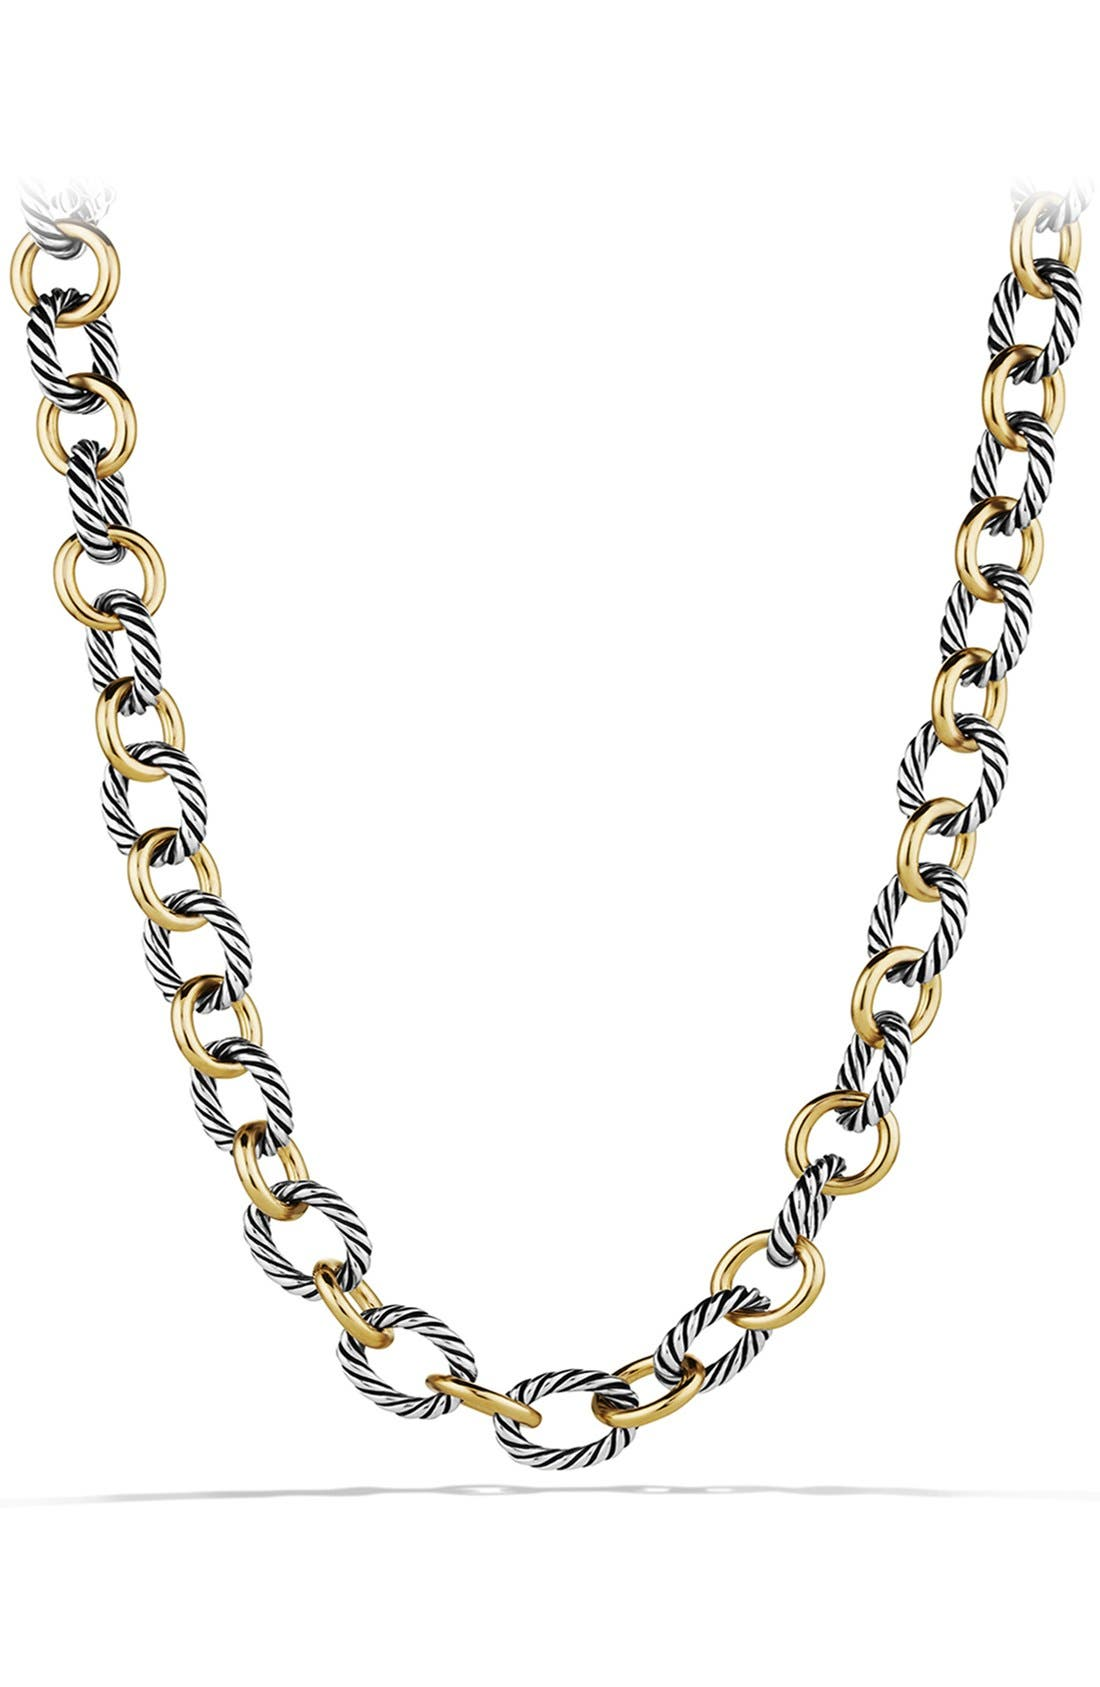 Main Image - David Yurman 'Oval' Large Link Necklace with Gold